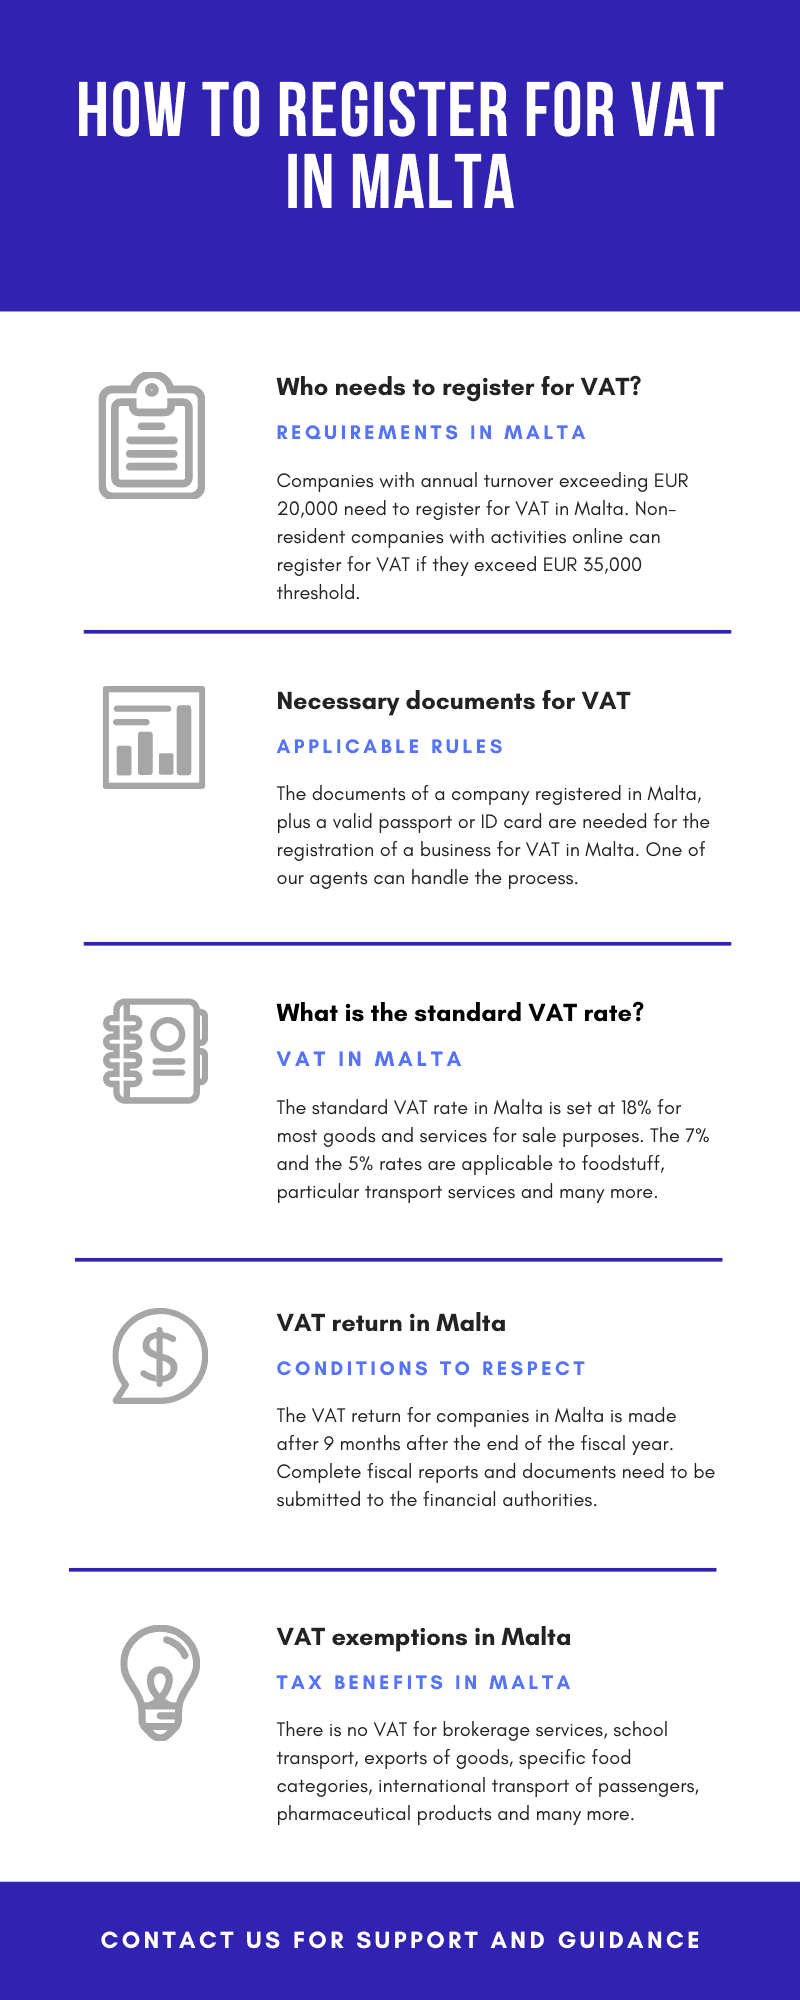 how-to-register-for-vat-in-malta1.png